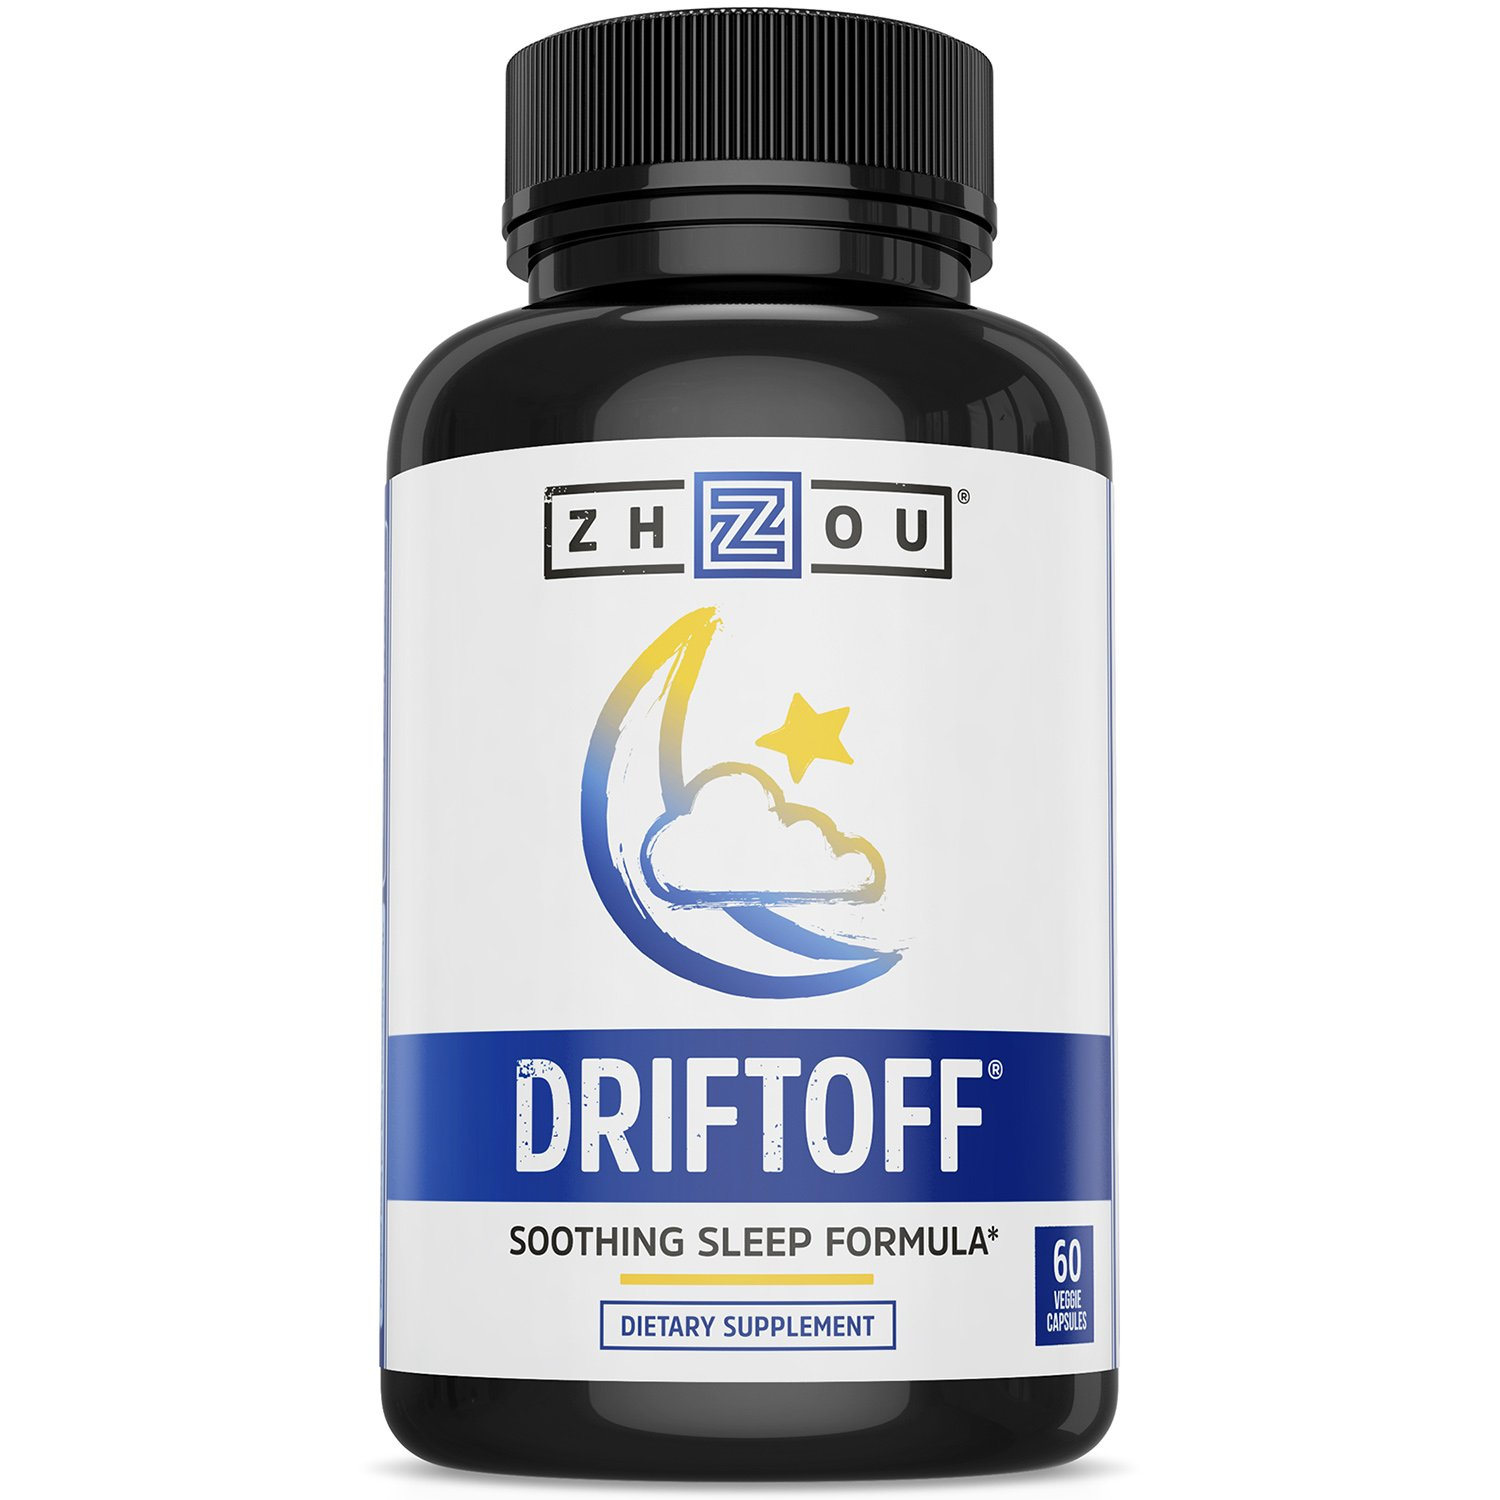 DRIFTOFF Premium Sleep Aid with Valerian Root & Melatonin - Sleep Well, Wake Refreshed - Non Habit Forming Sleep Supplement - Also Includes Chamomile, Tryptophan, Lemon Balm & More - 60 Veggie Caps